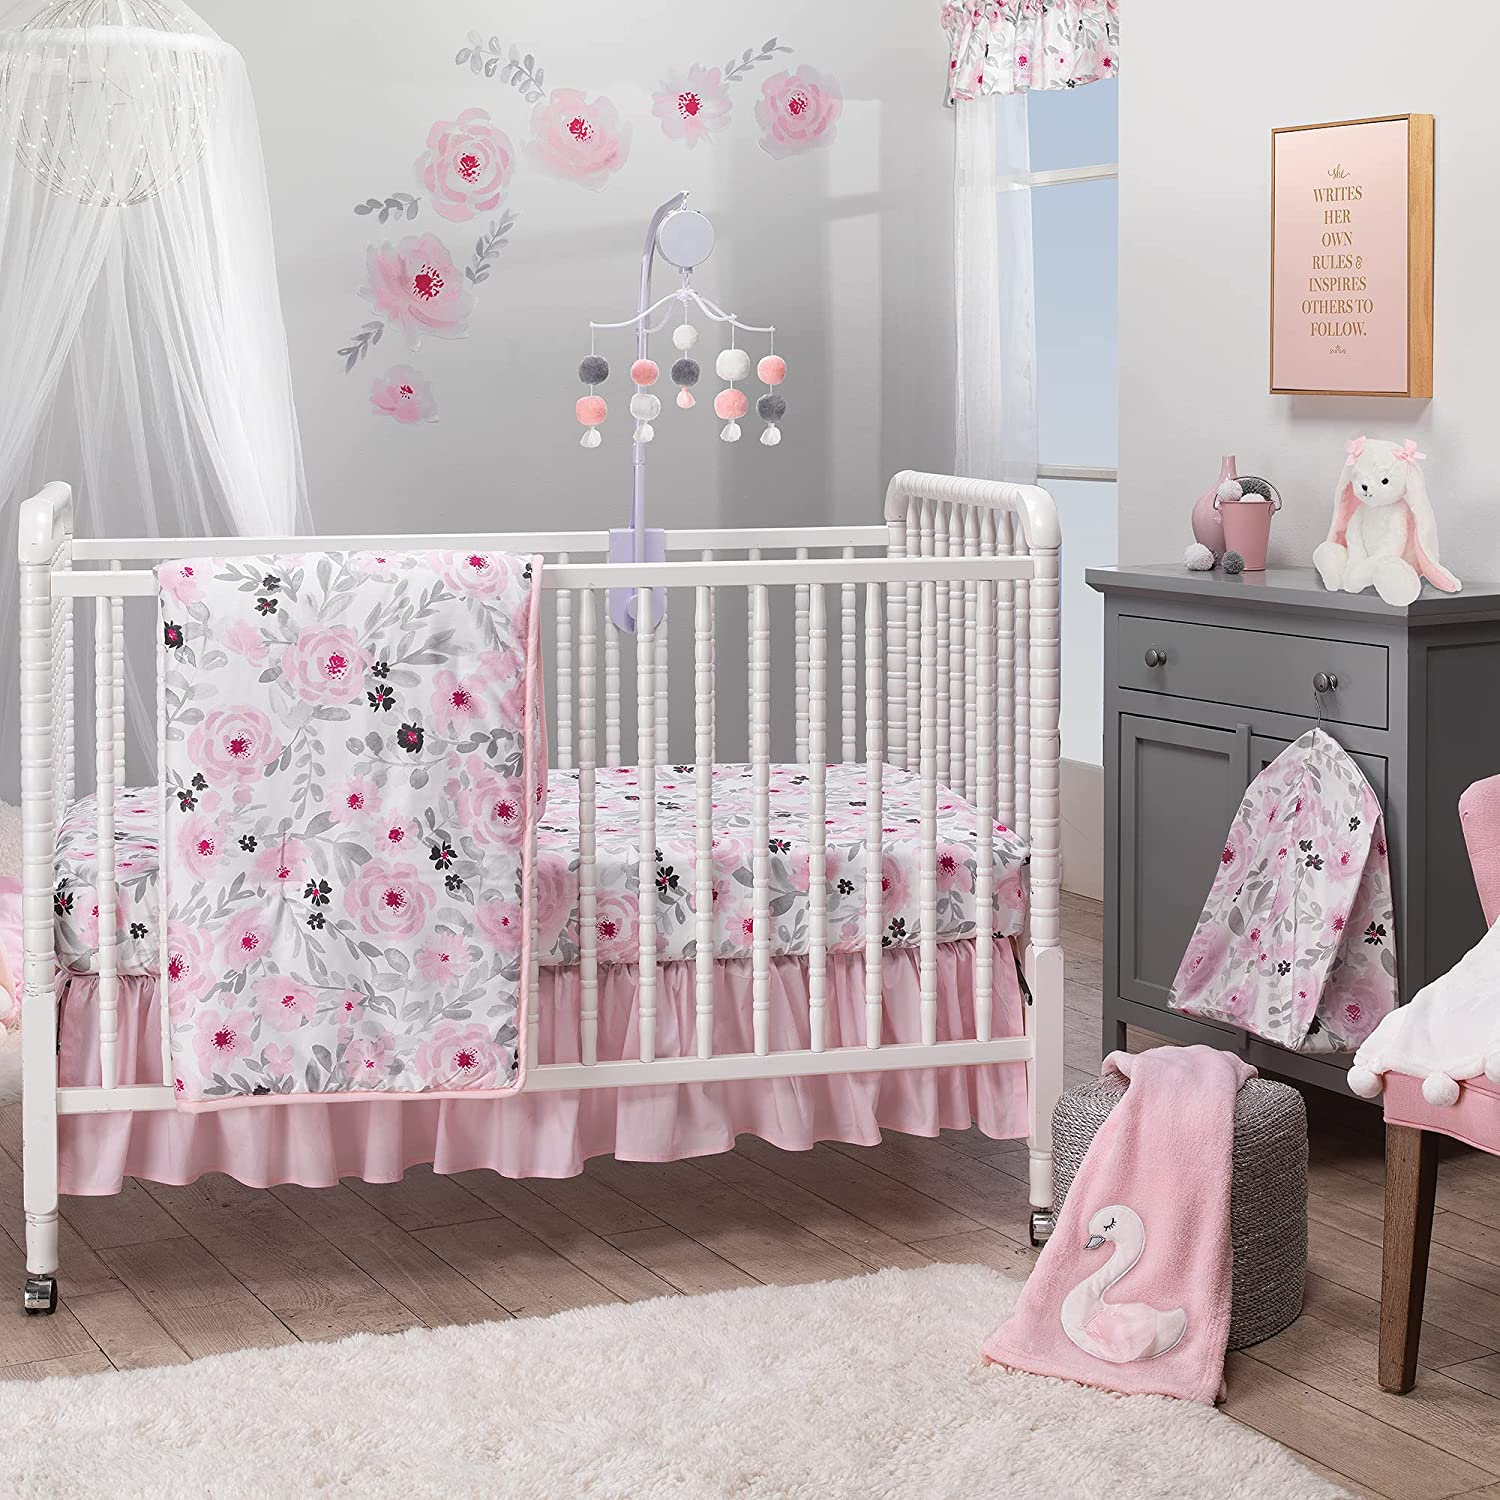 shipfree Bedtime Originals Ranking integrated 1st place Blossom Pink Watercolor Baby Cr Floral 3-Piece